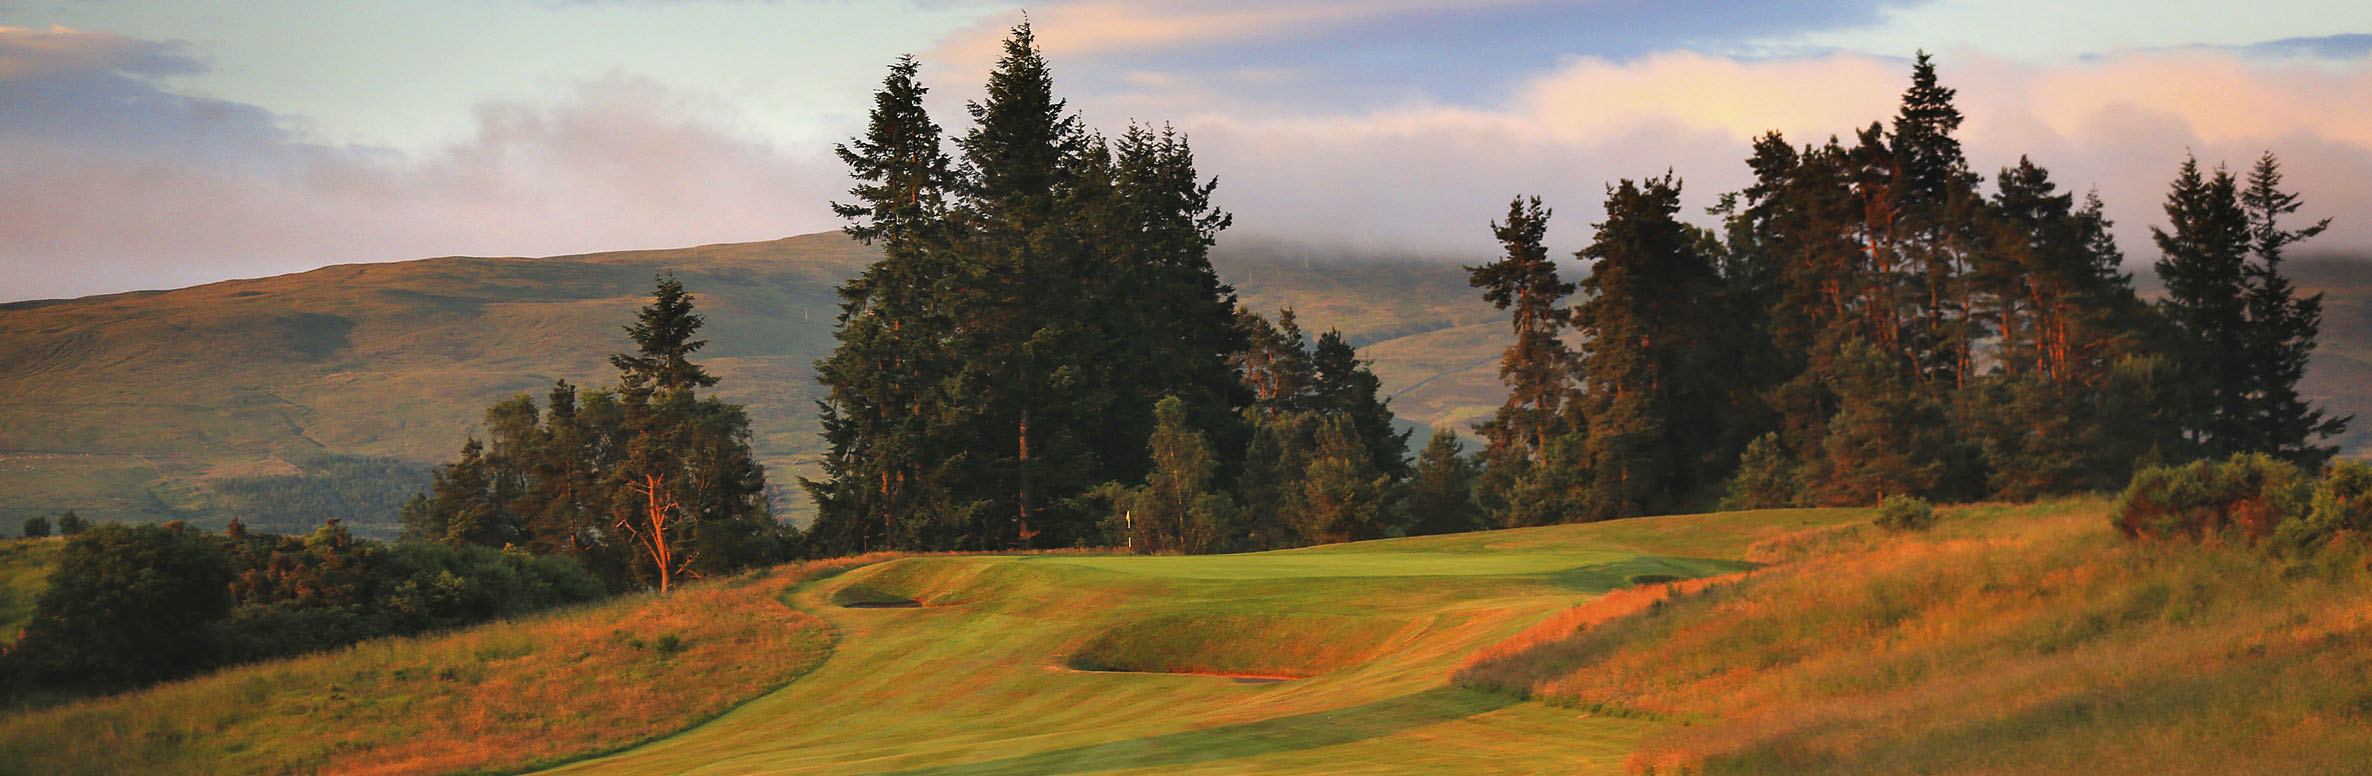 Golf Course Image - Gleneagles Kings Course No. 5